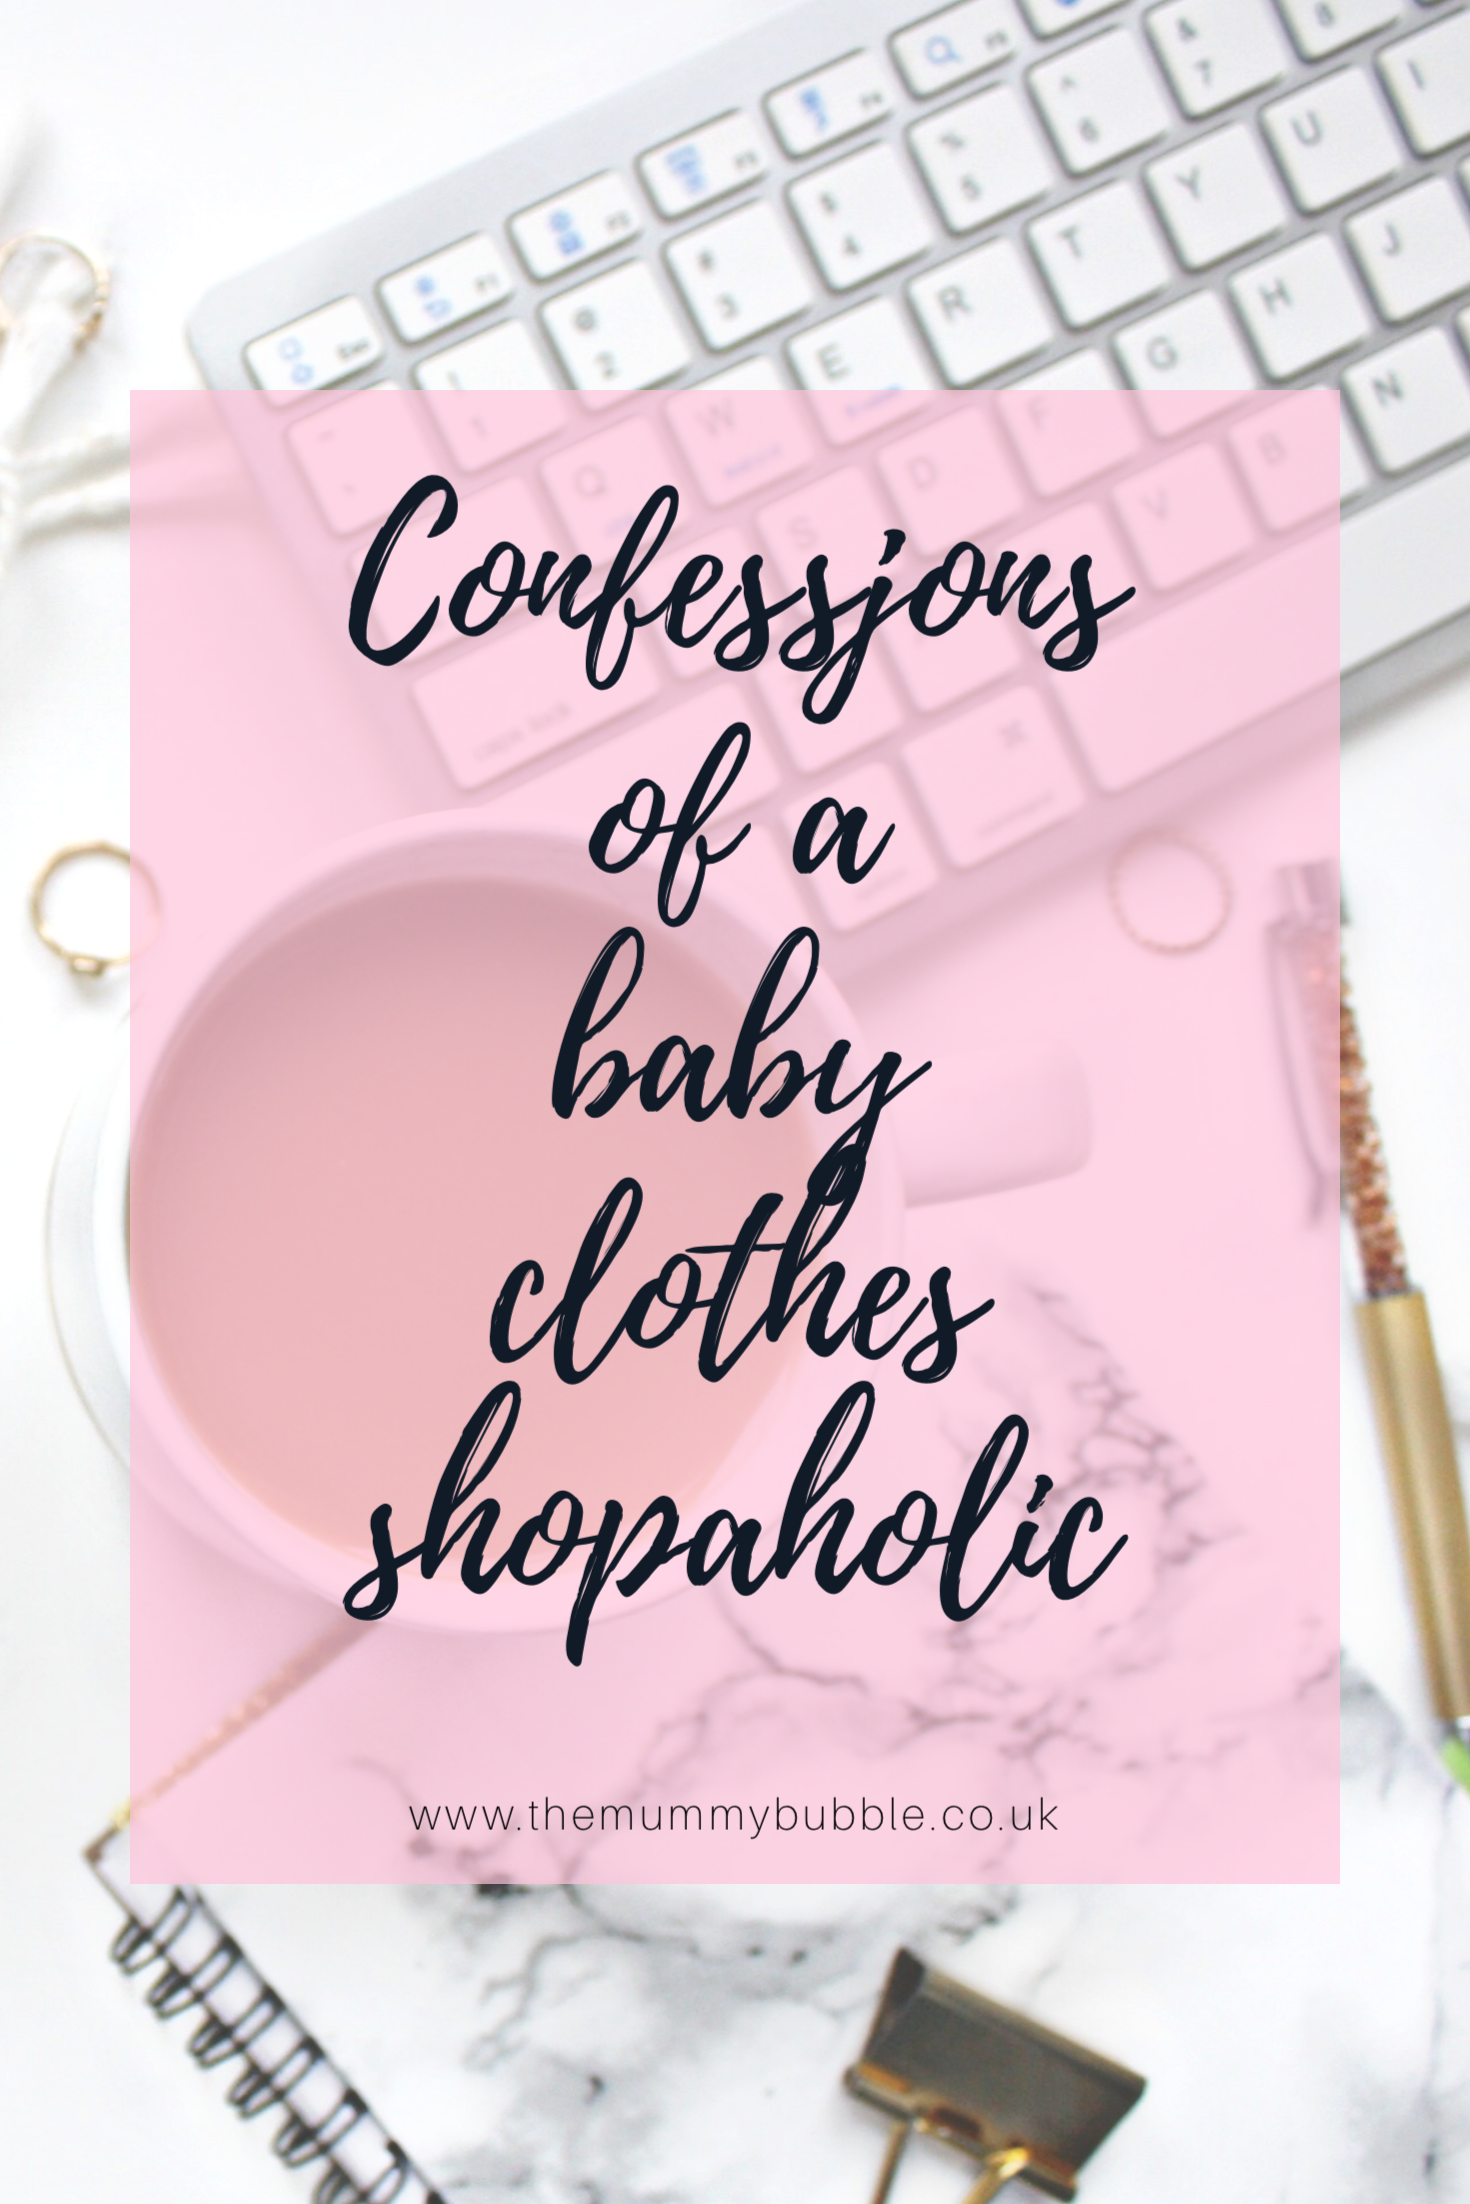 Confessions of a baby clothes shopaholic